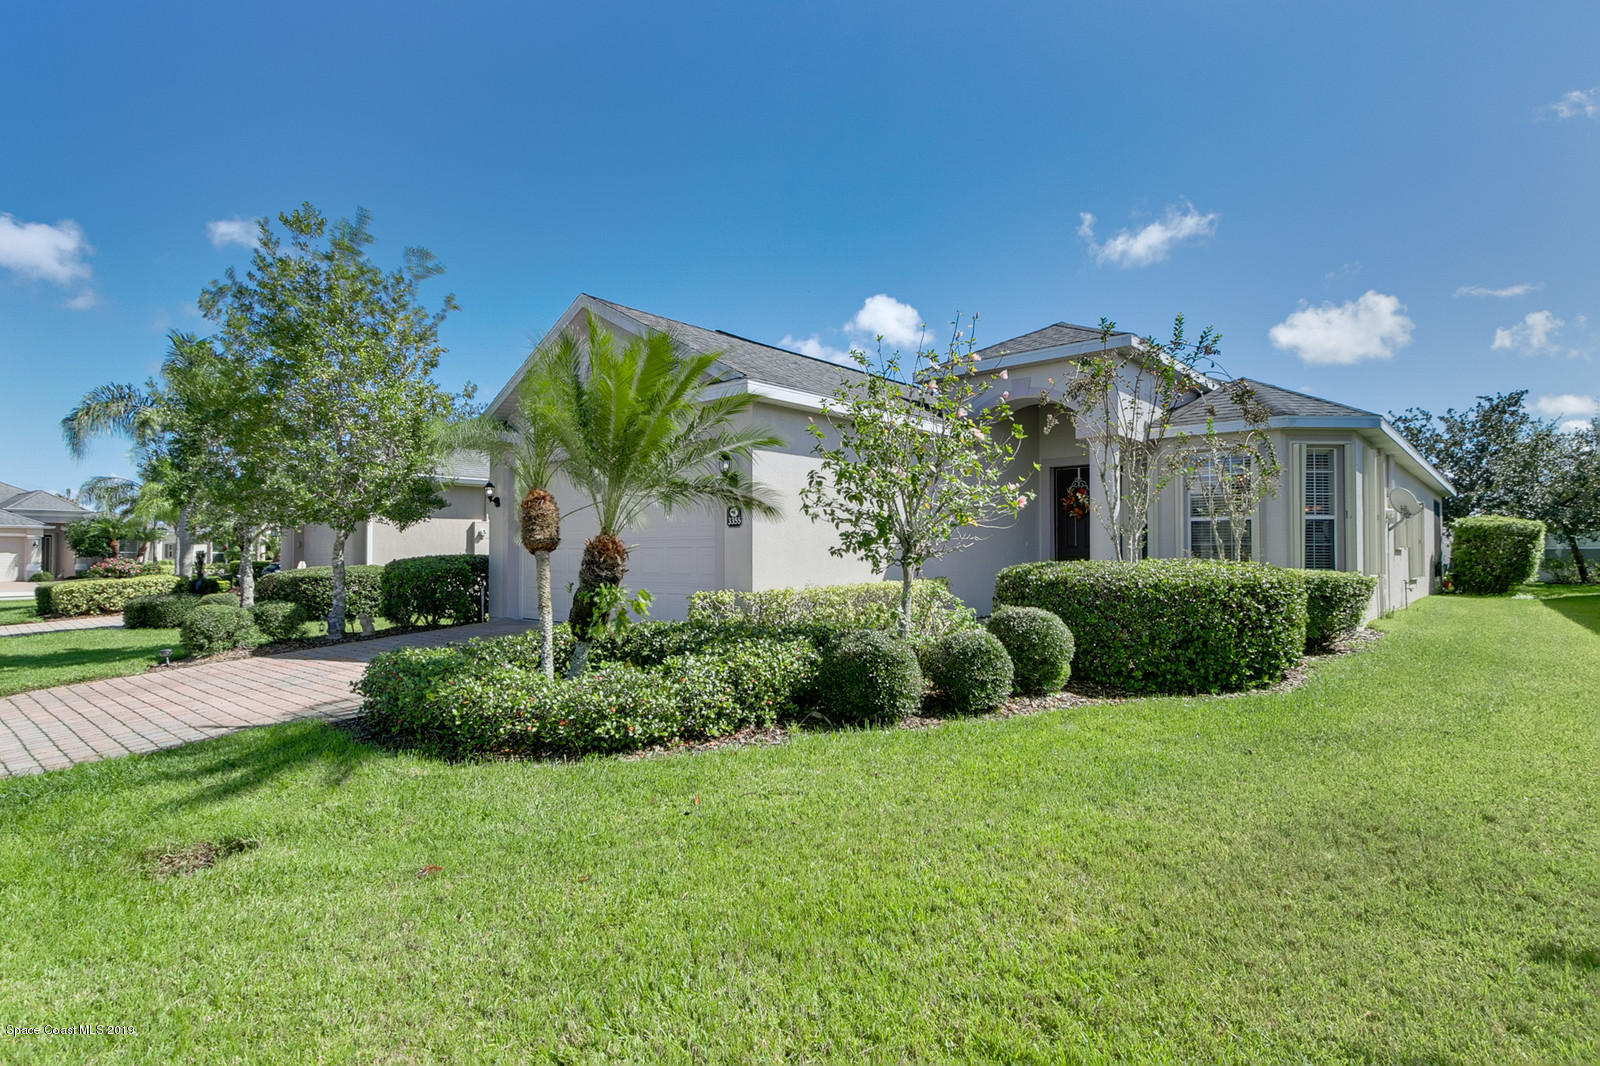 Single Family Homes for Sale at 3355 Moonstone Melbourne, Florida 32940 United States